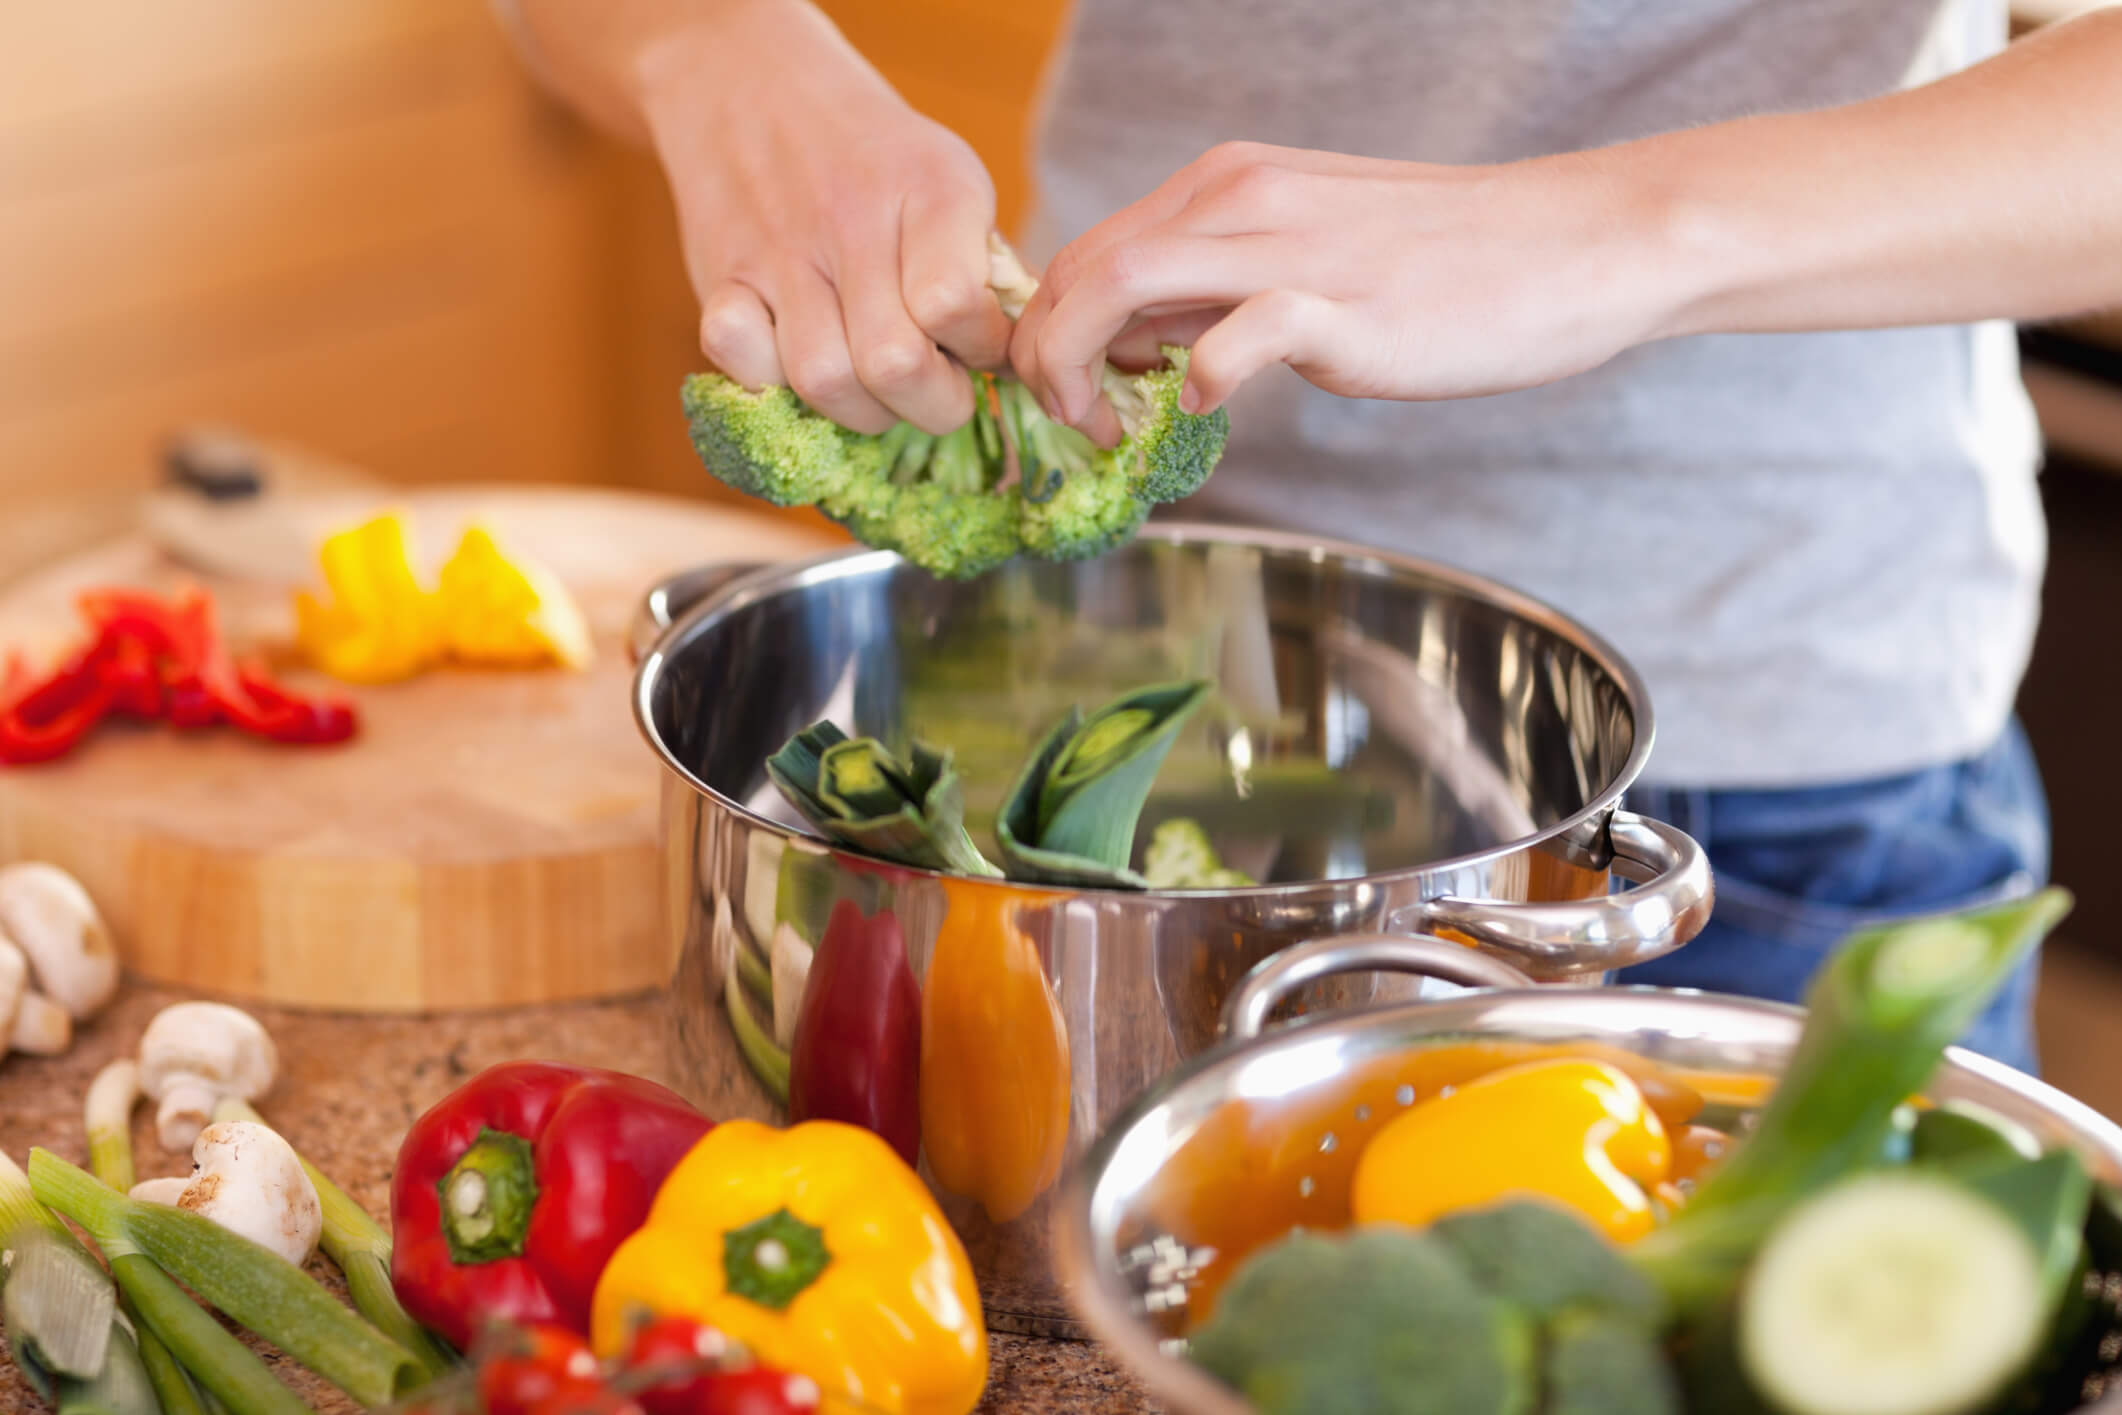 Making Healthy Cooking A Priority